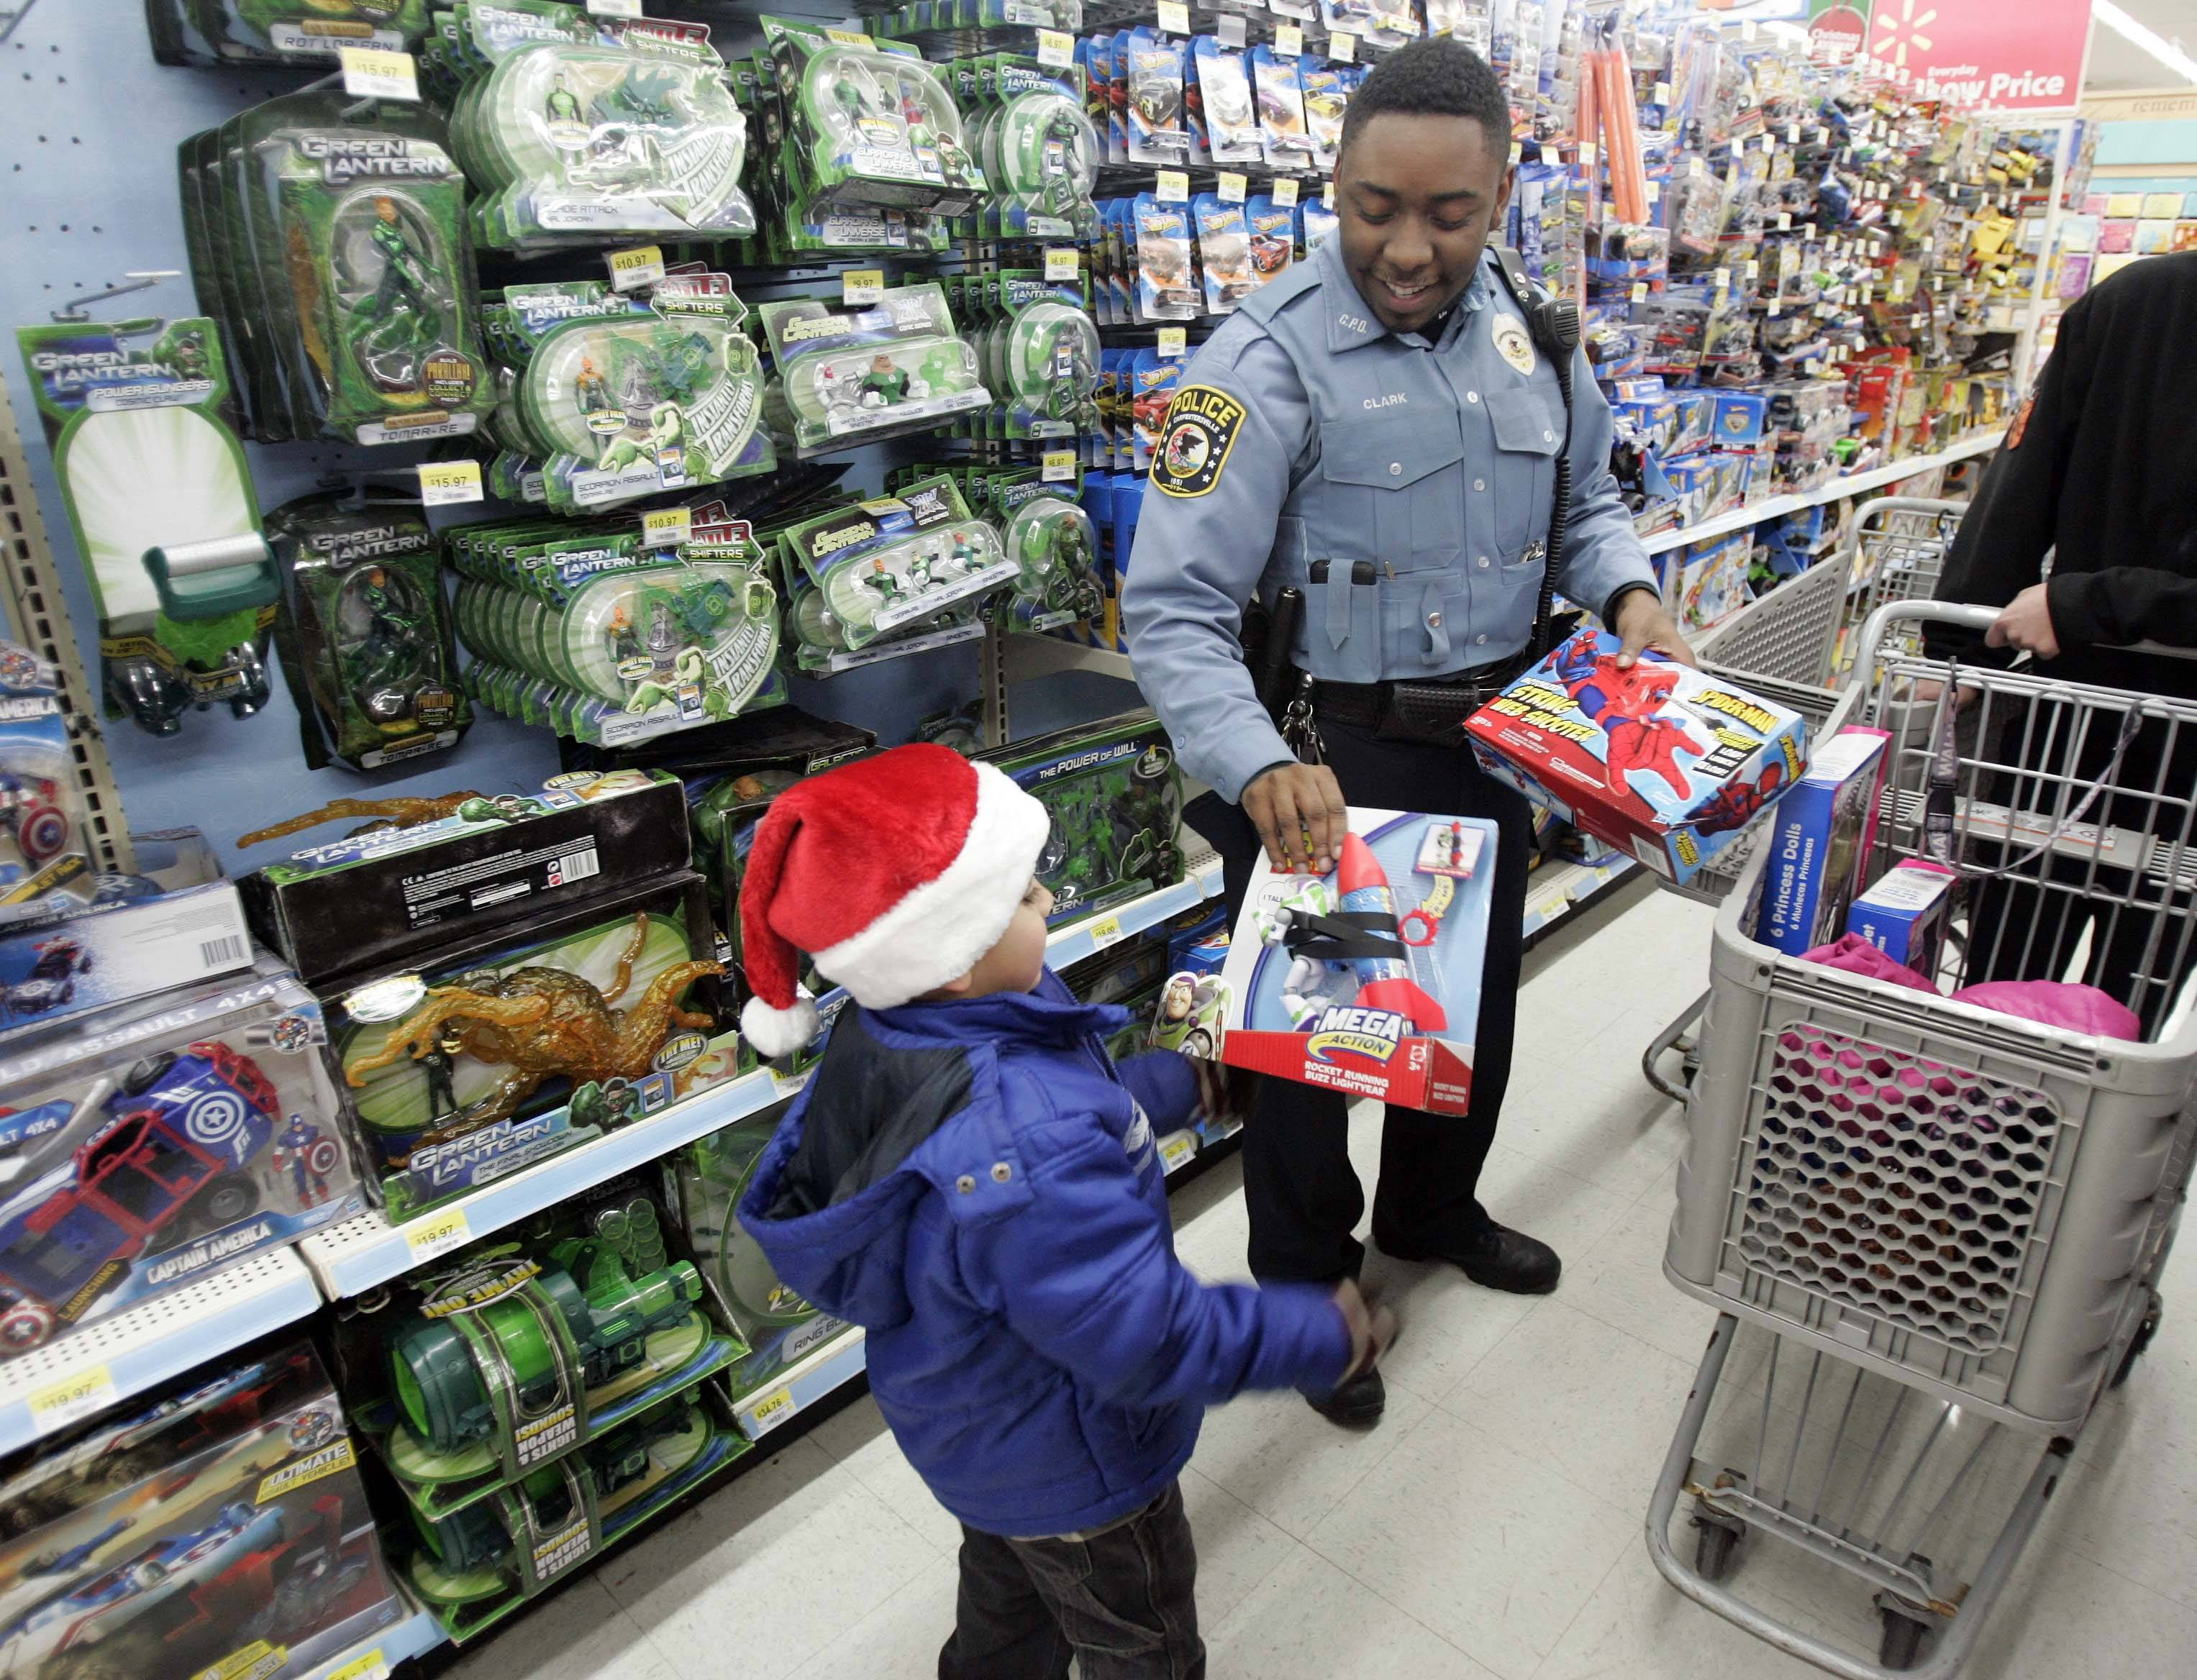 Tony Perez, 4, of Carpentersville hands Carpentersville community service officer Marcus Clark a gift to add to the basket during a previous Shop With a Cop program at Walmart in East Dundee. An upcoming bowling event will help raise funds for Shop With a Cop.